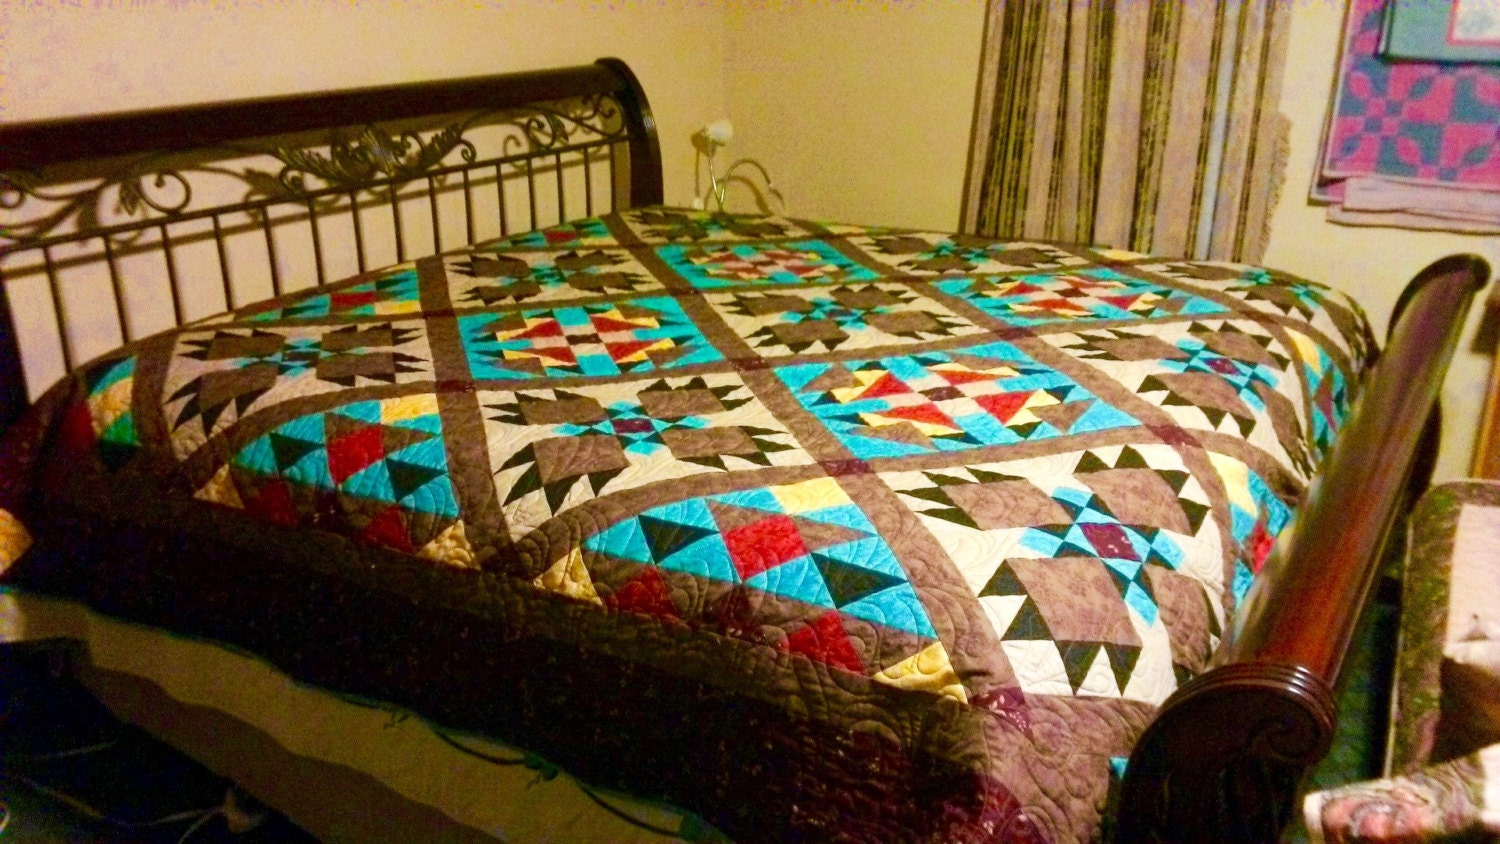 Southwest Bedroom Decor Bedroom Quilts Rustic Bedding Cabin Black Forest Decor A Best Home